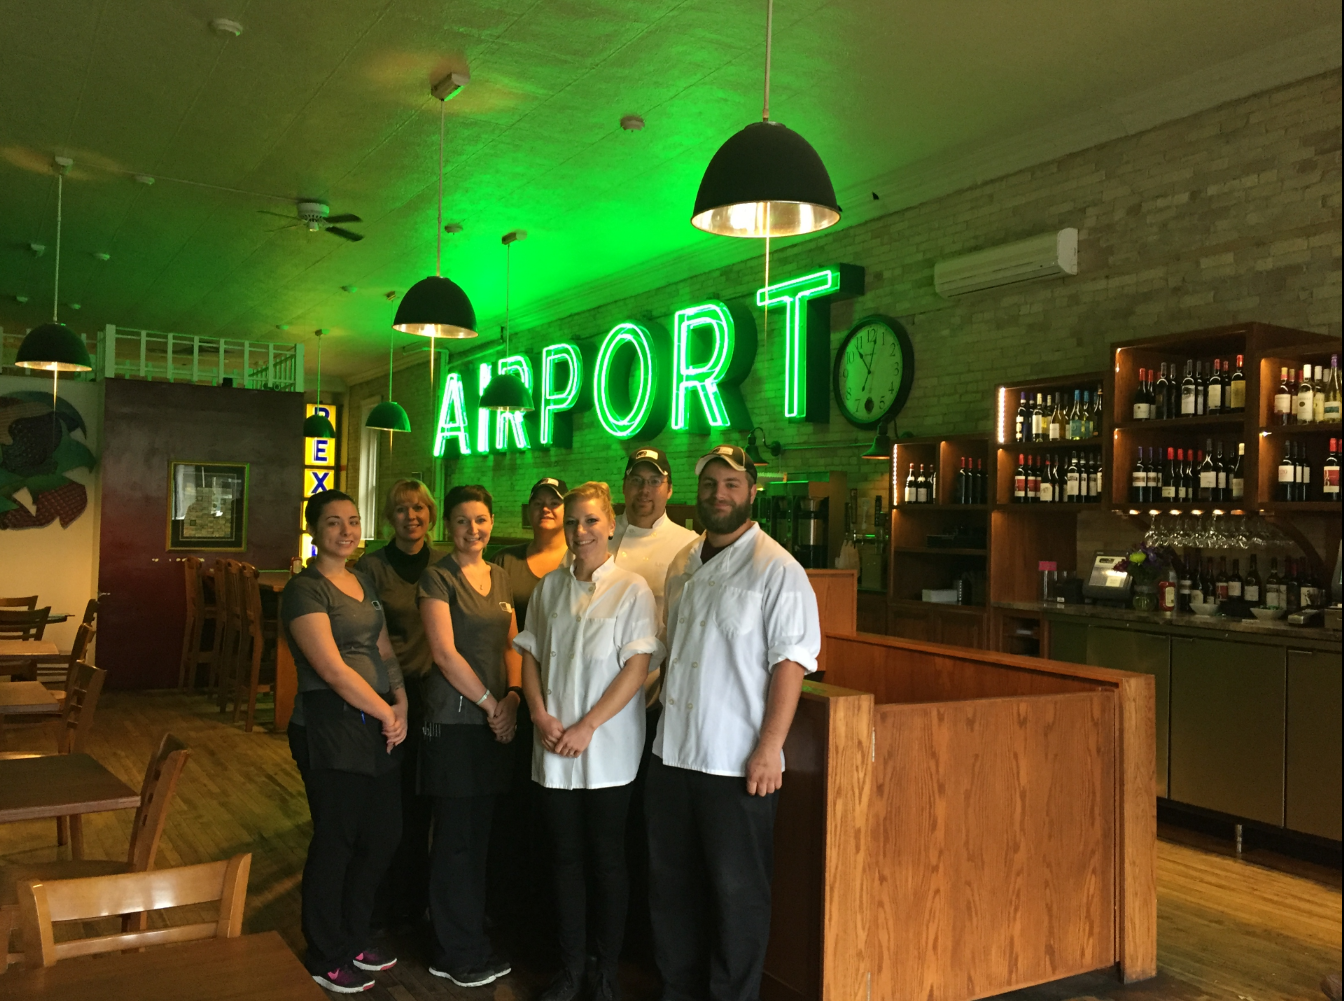 Staff & Airport sign